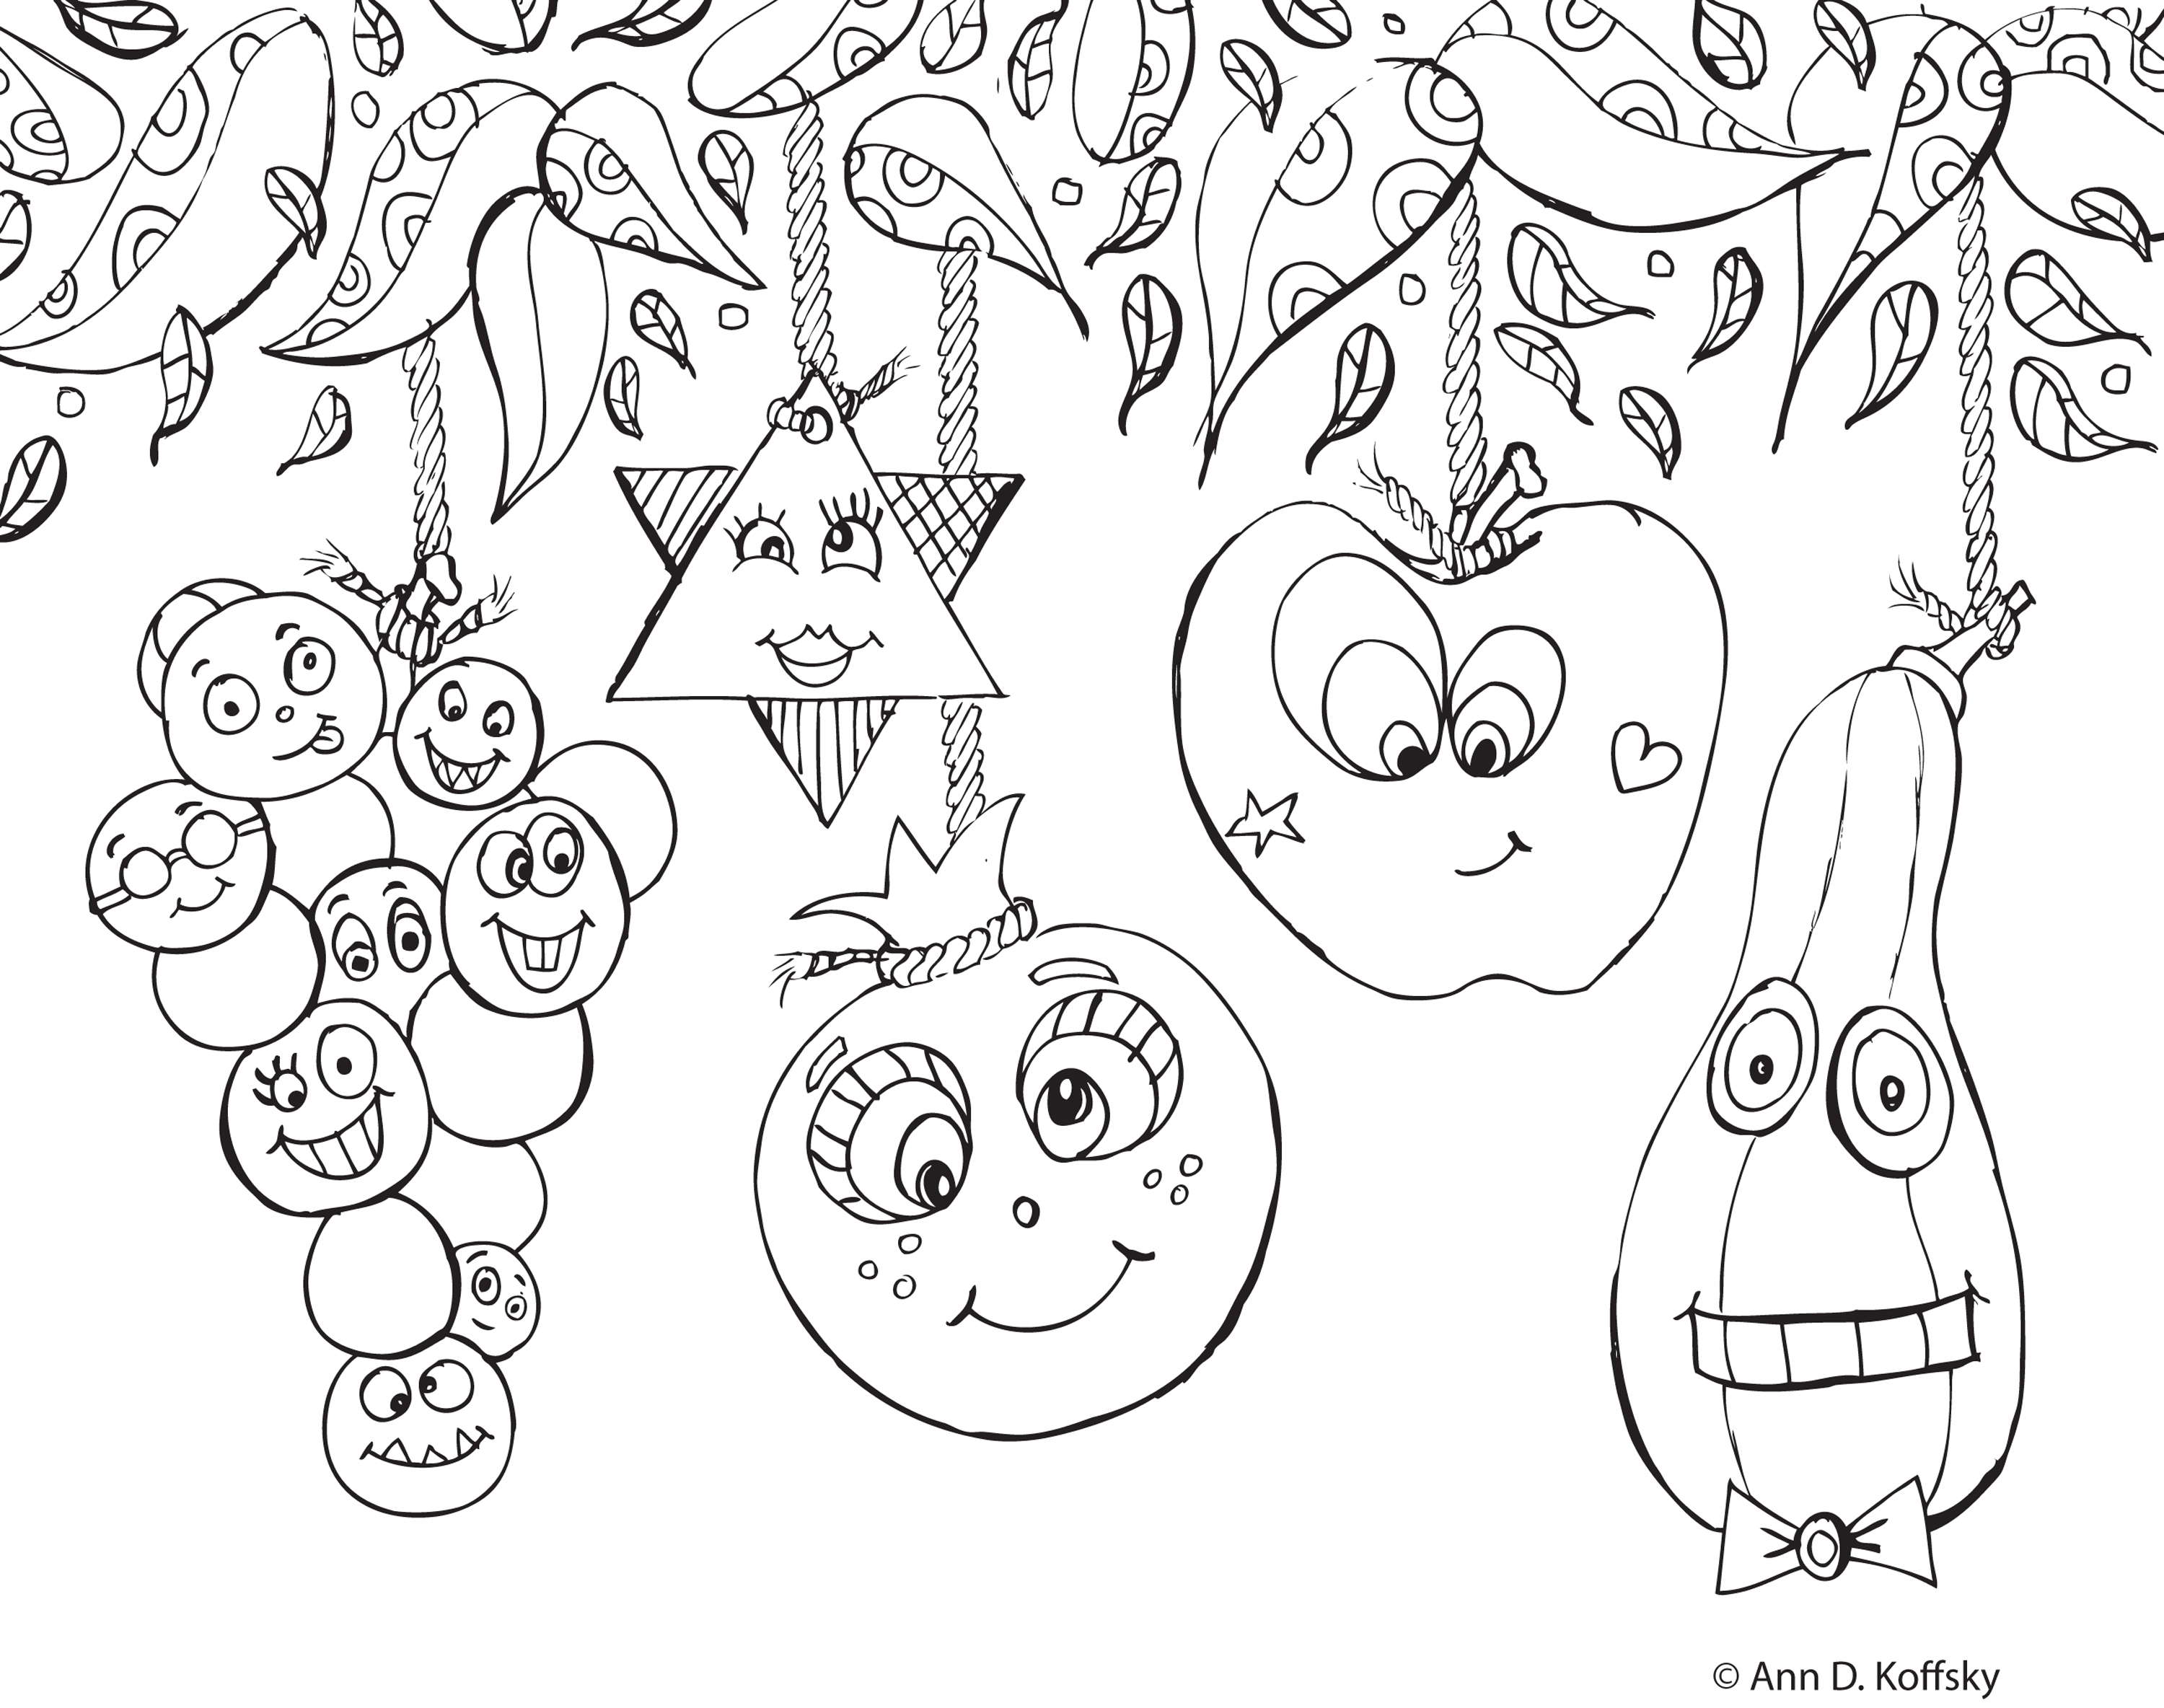 Succot faces coloring page